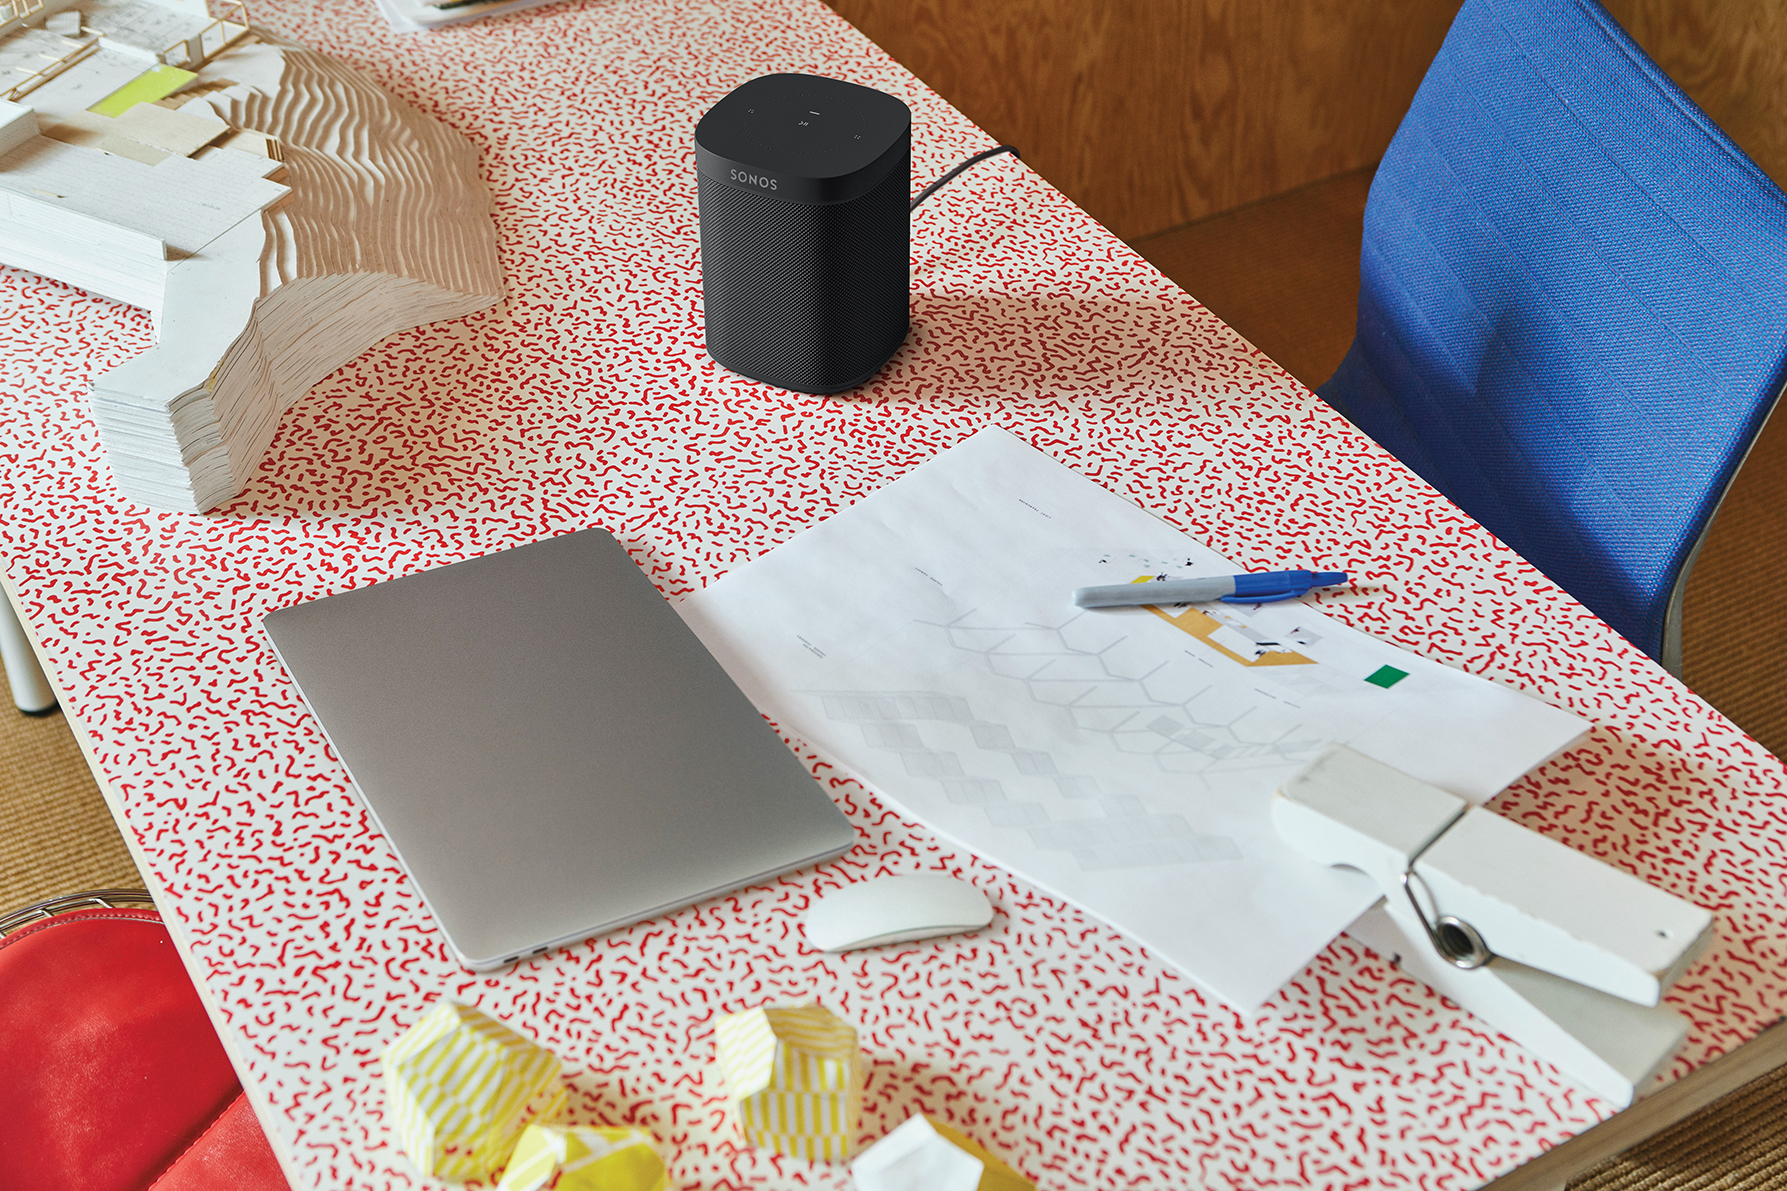 One_Shadow_Edition-Lifestyle-At_Home_With_Sonos__Home_Office-770x600-Q3FY20_MST-MST_JPEG_fid90435